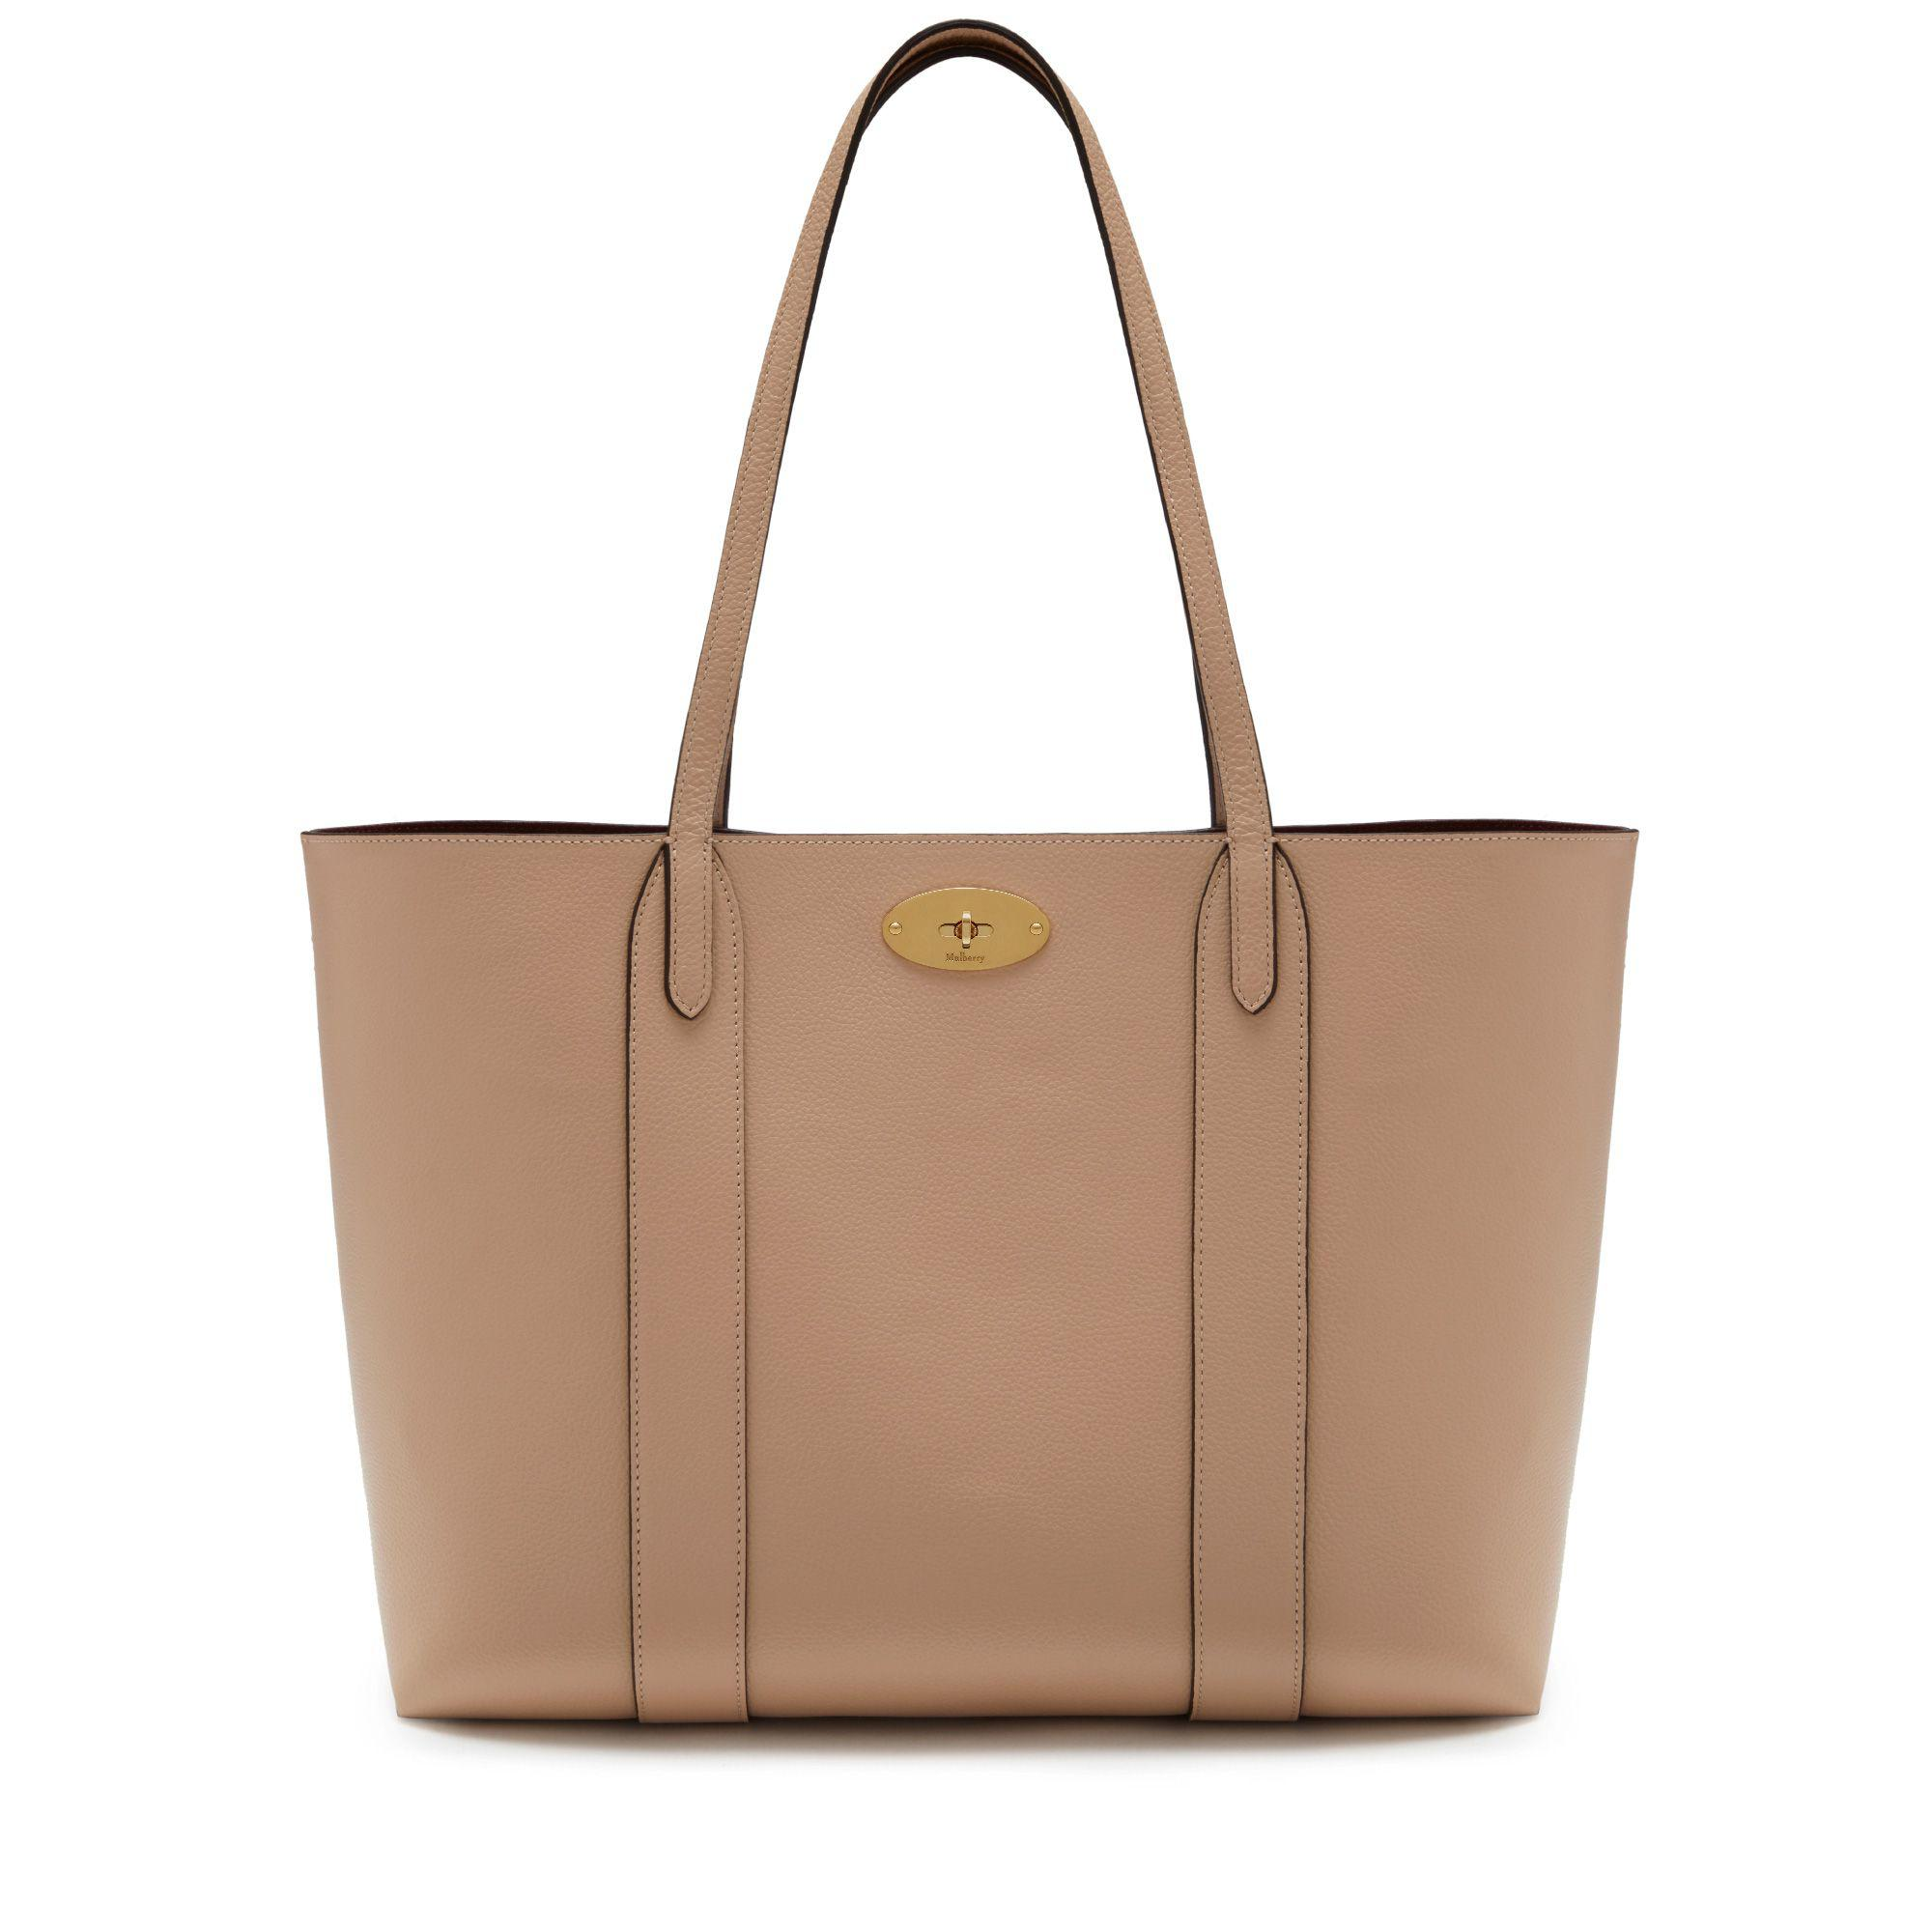 7bf1c4cede4a Lyst - Mulberry Bayswater Tote In Rosewater Small Classic Grain in Brown